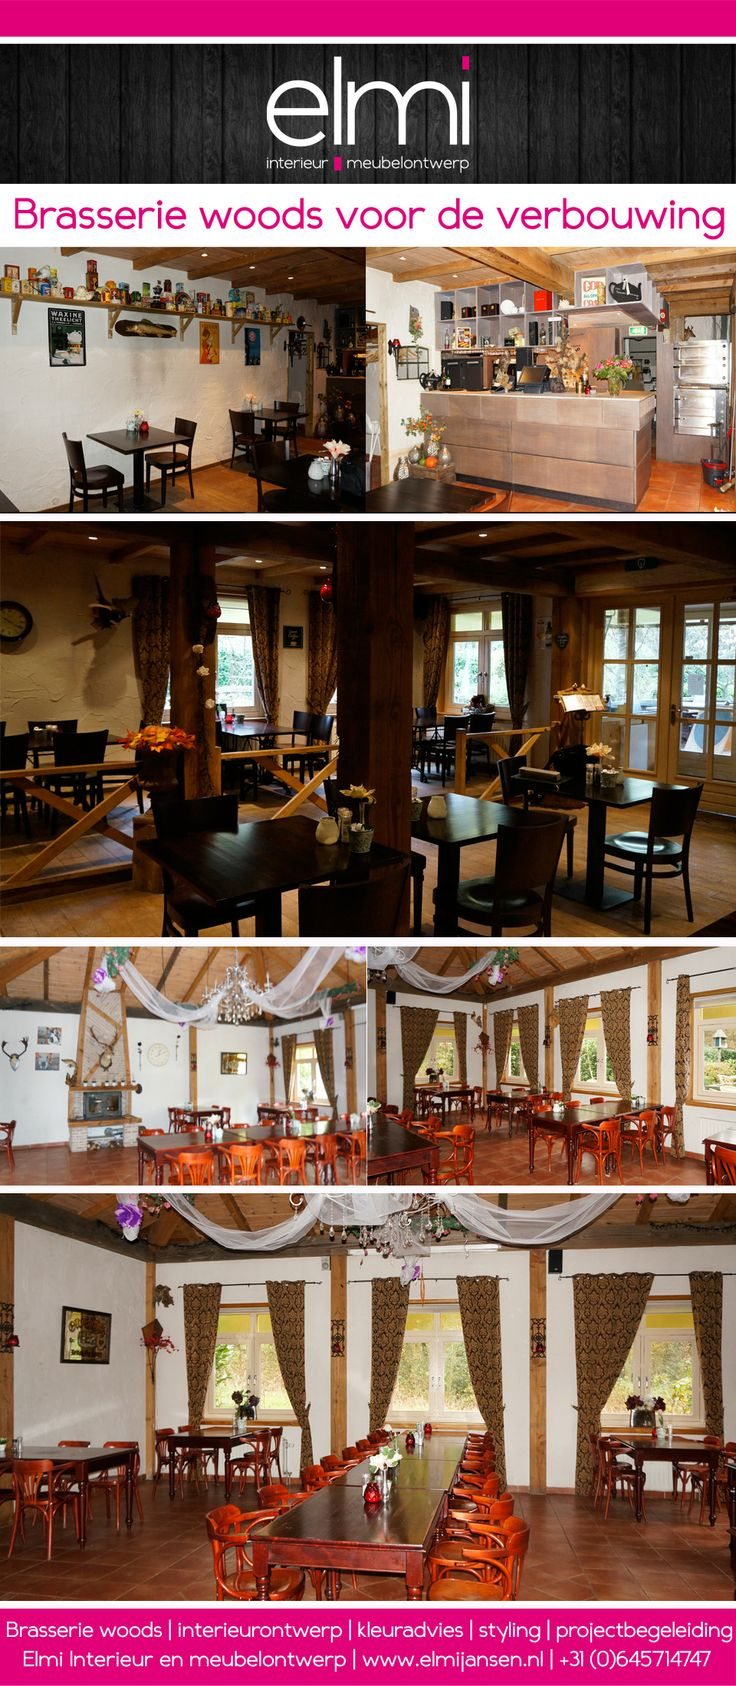 17 best images about ontwerp brasserie woods in oosterhout on pinterest d interieur and woods - Meubelontwerp ...